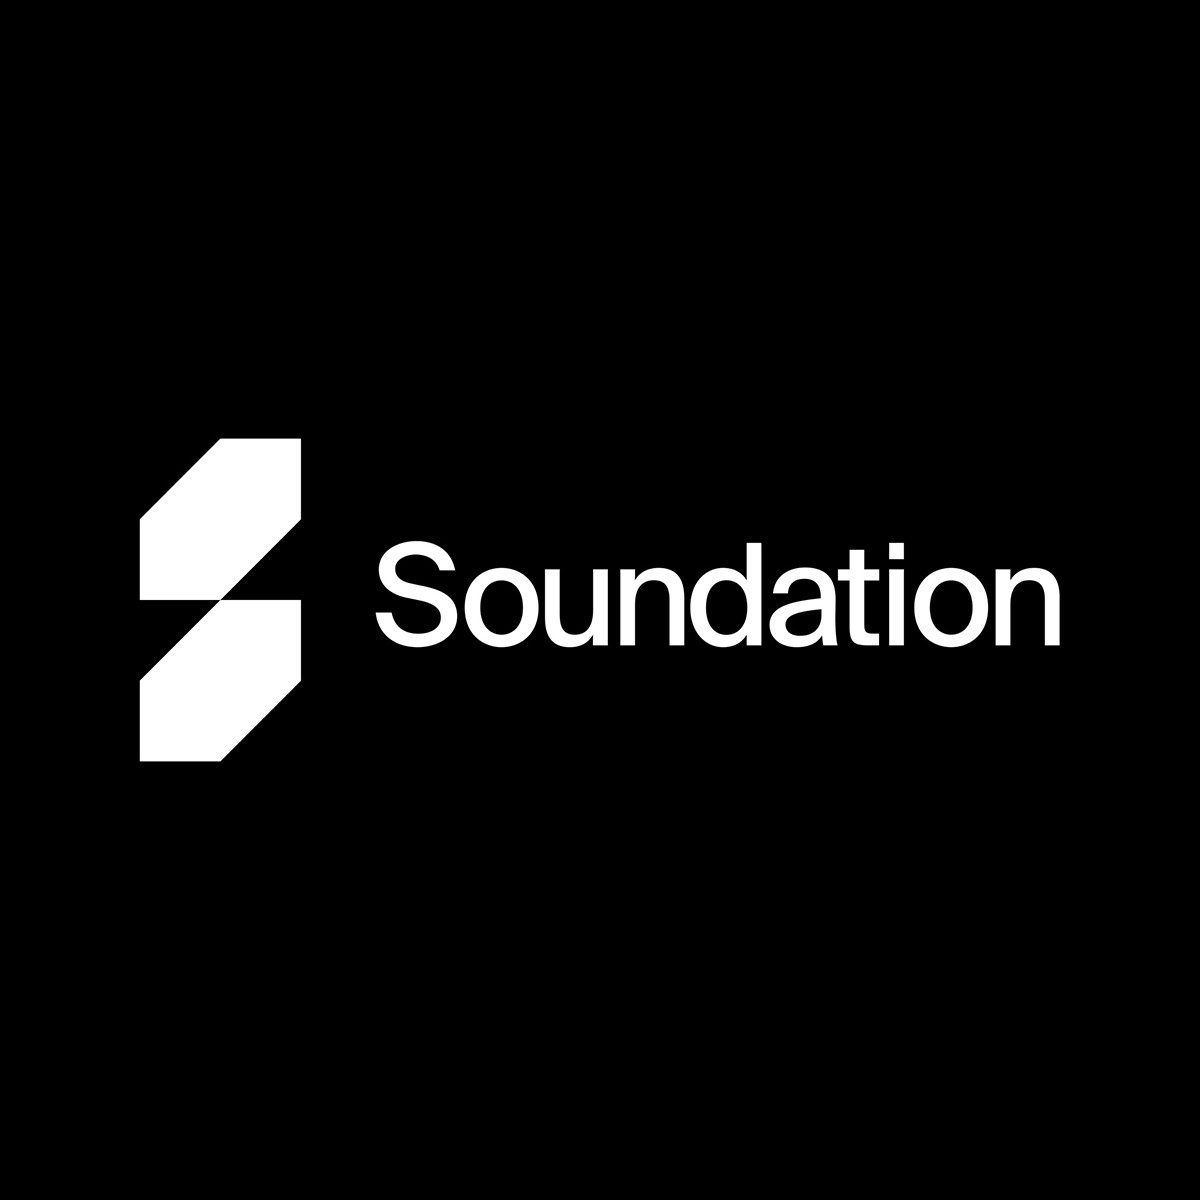 Soundation Gets Design Overhaul by Kurppa Hosk